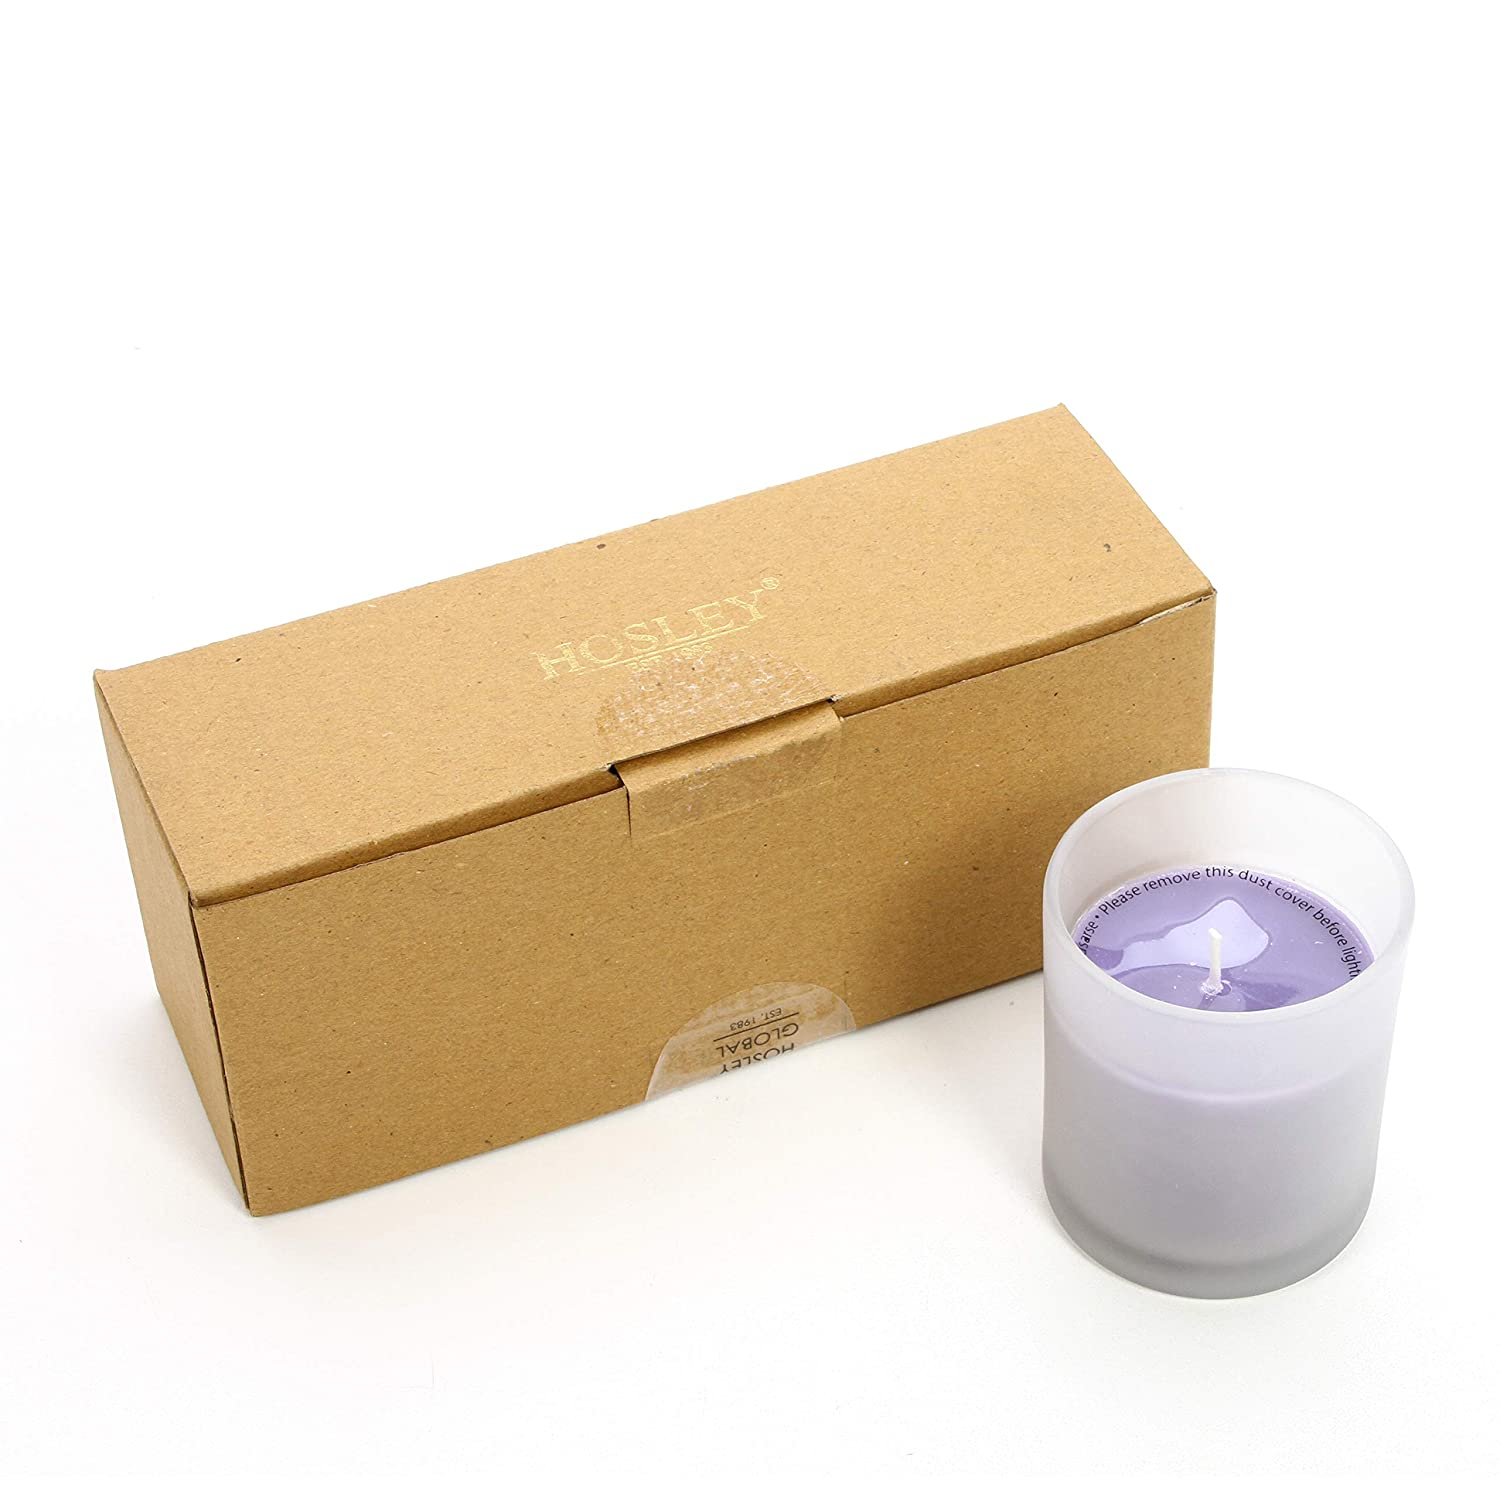 4 oz Each,up to 72 Hour Burn Gift for Wedding 3 High Lavender Scented Large Frosted White Glass Survival Wax Filled Votive Candles SPA Zen Party Reiki O3 3 High HG Global FBA-G45665ON-1-EA Hosley Aromatherapy Set of 3